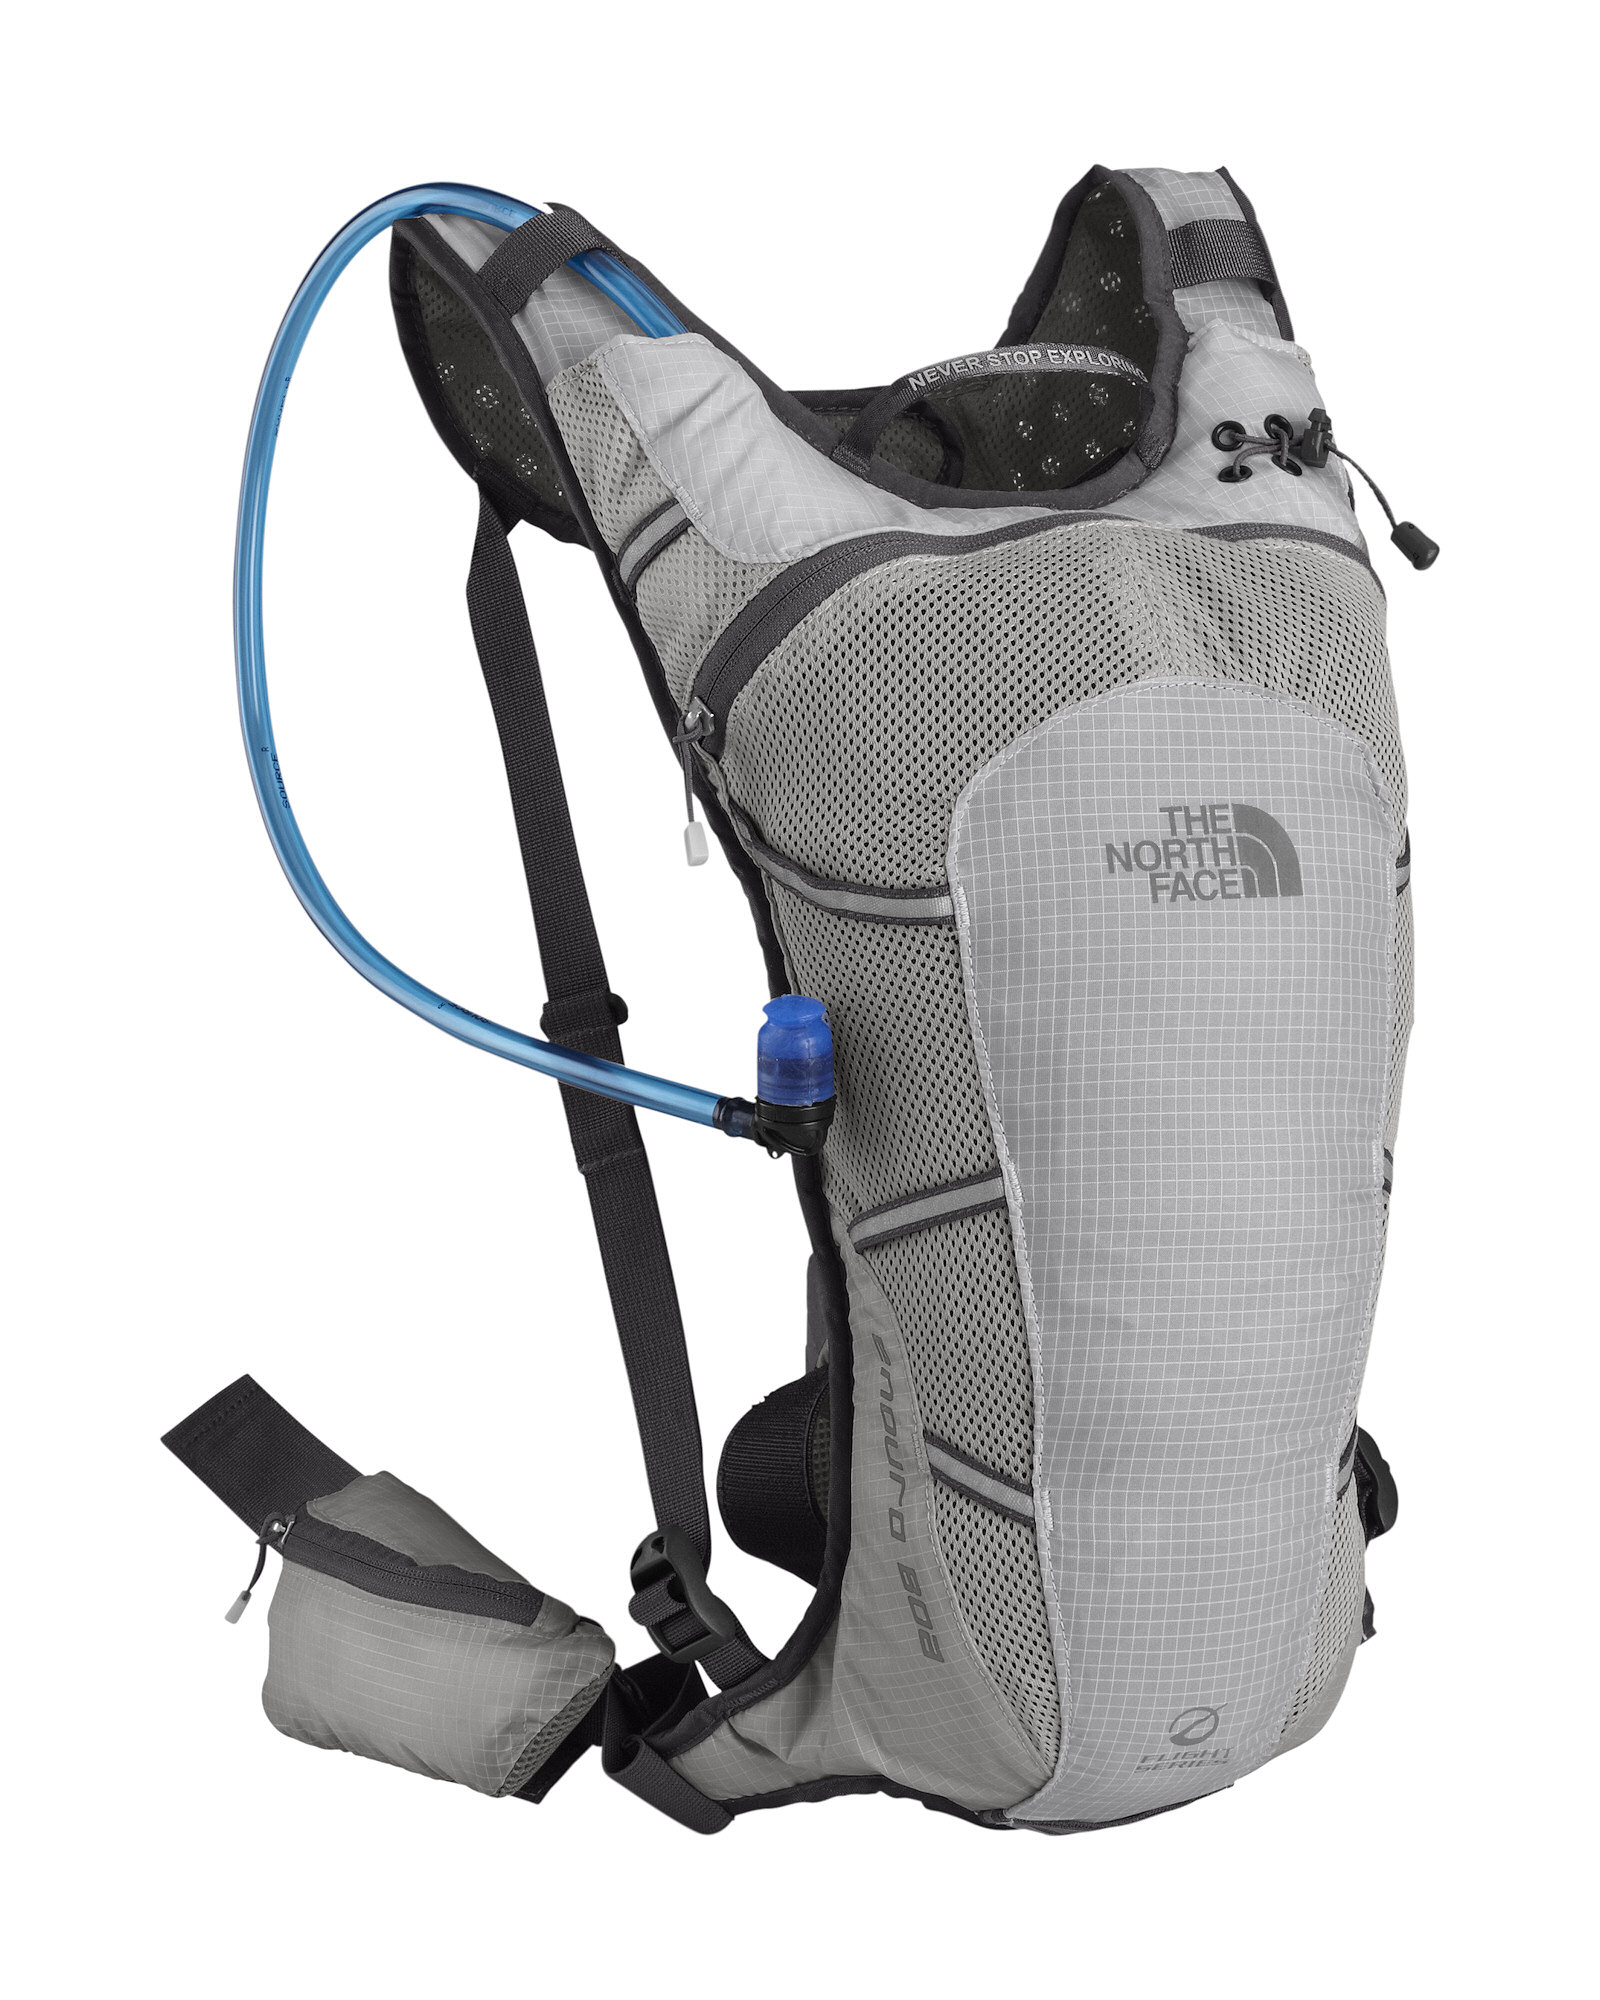 6d63a396cf2 The North Face Enduro Boa Hydration Backpack Women's at NorwaySports ...